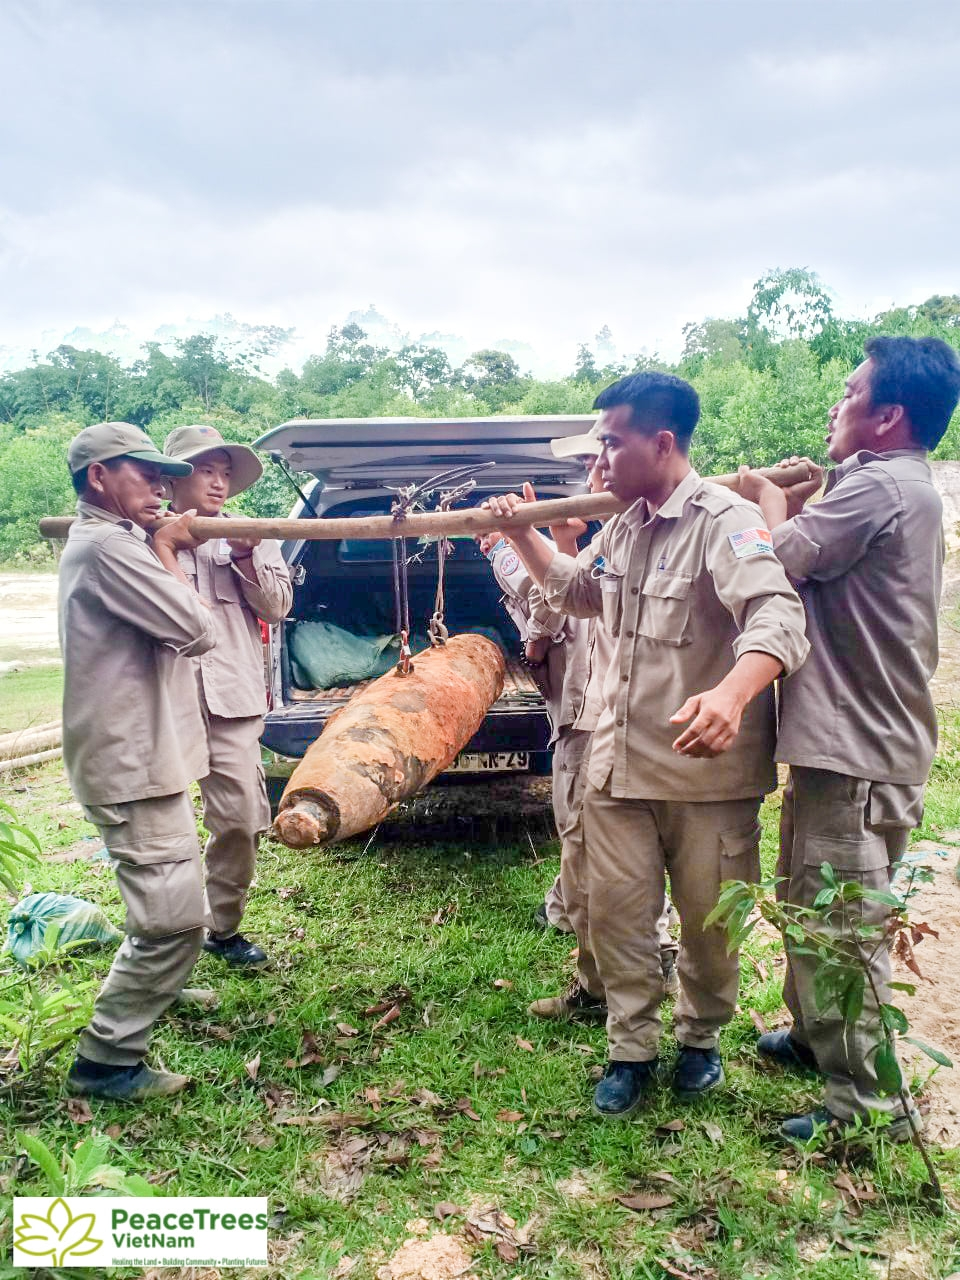 Foreign-funded projects help Vietnam deal with unexploded ordnance